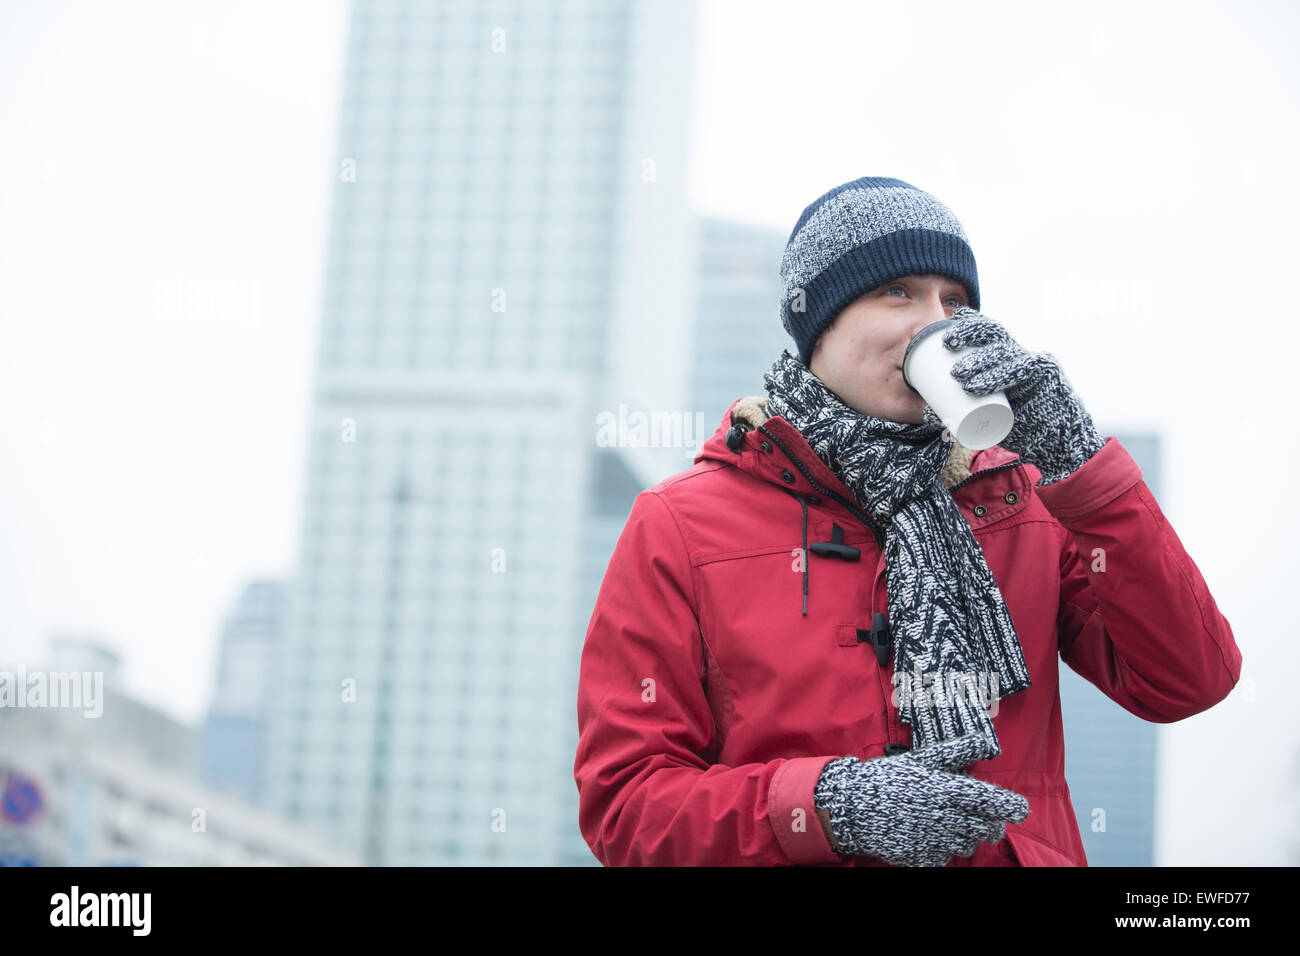 Man in warm clothing drinking coffee outdoors - Stock Image